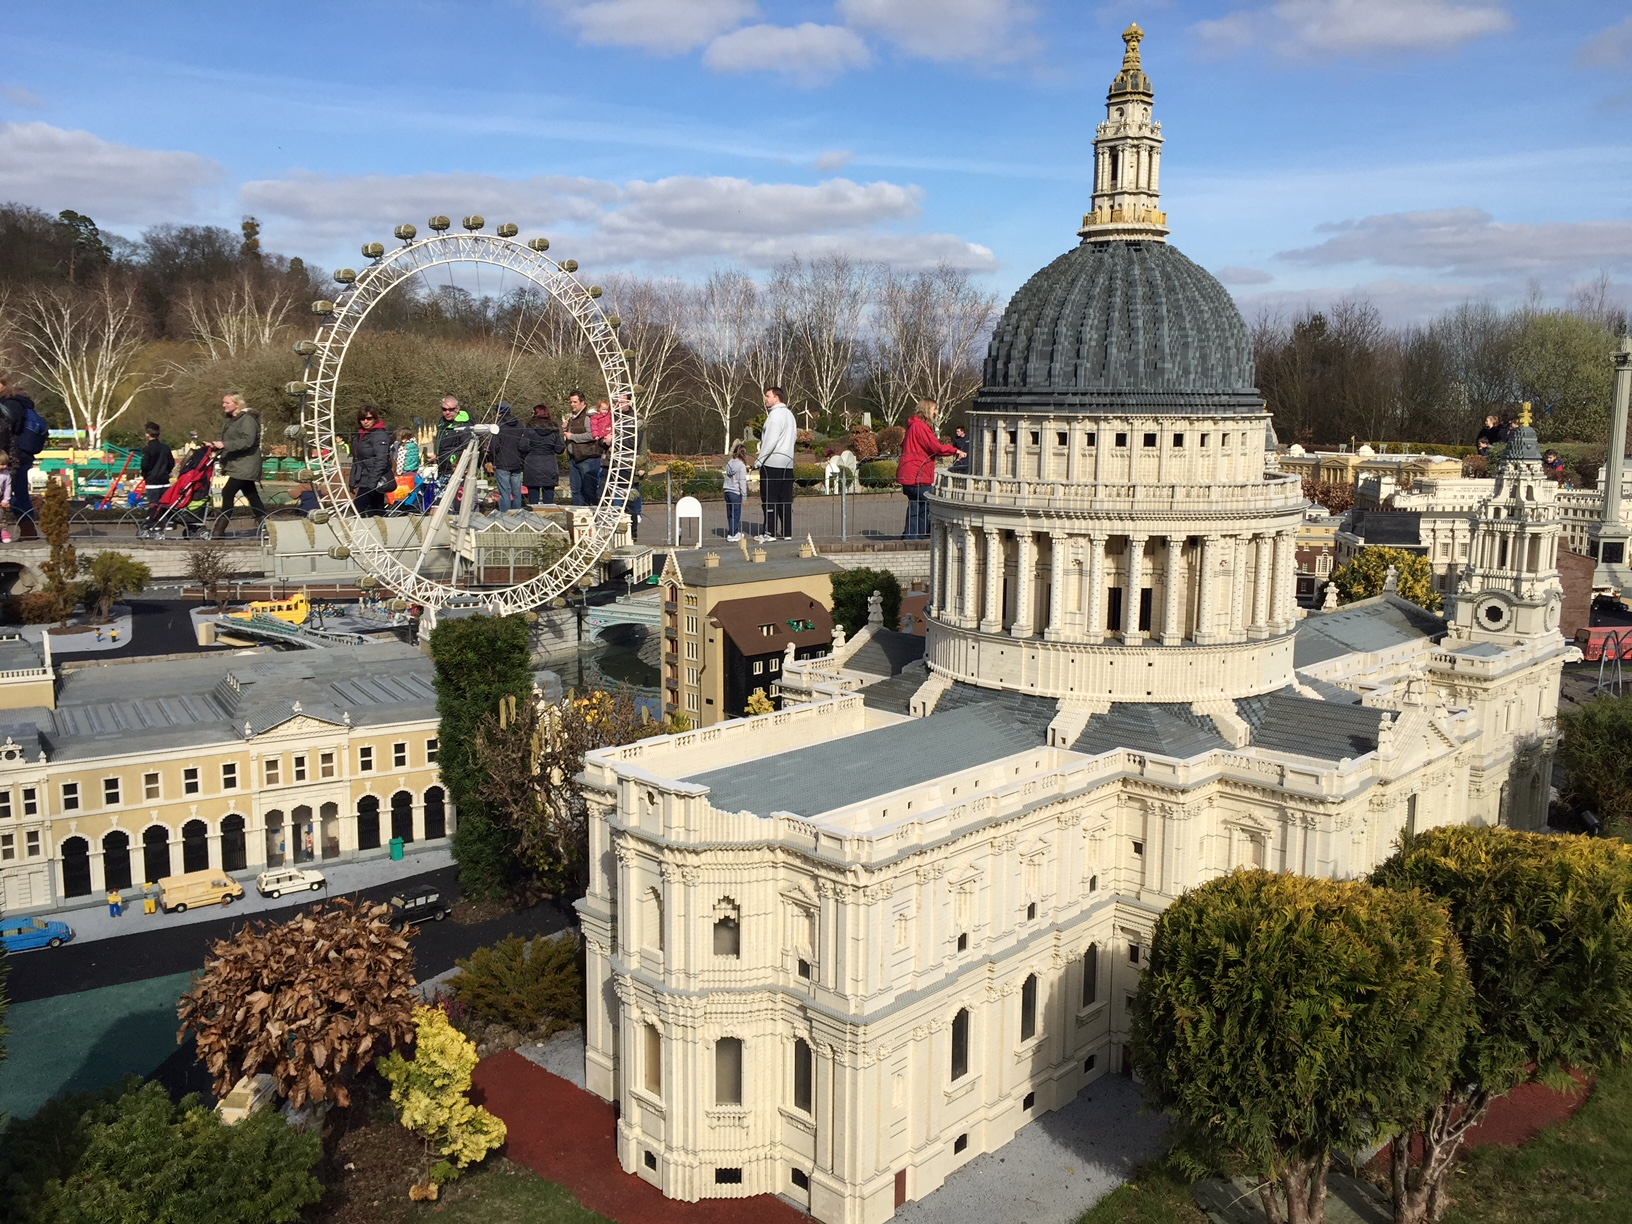 Legoland Miniland London